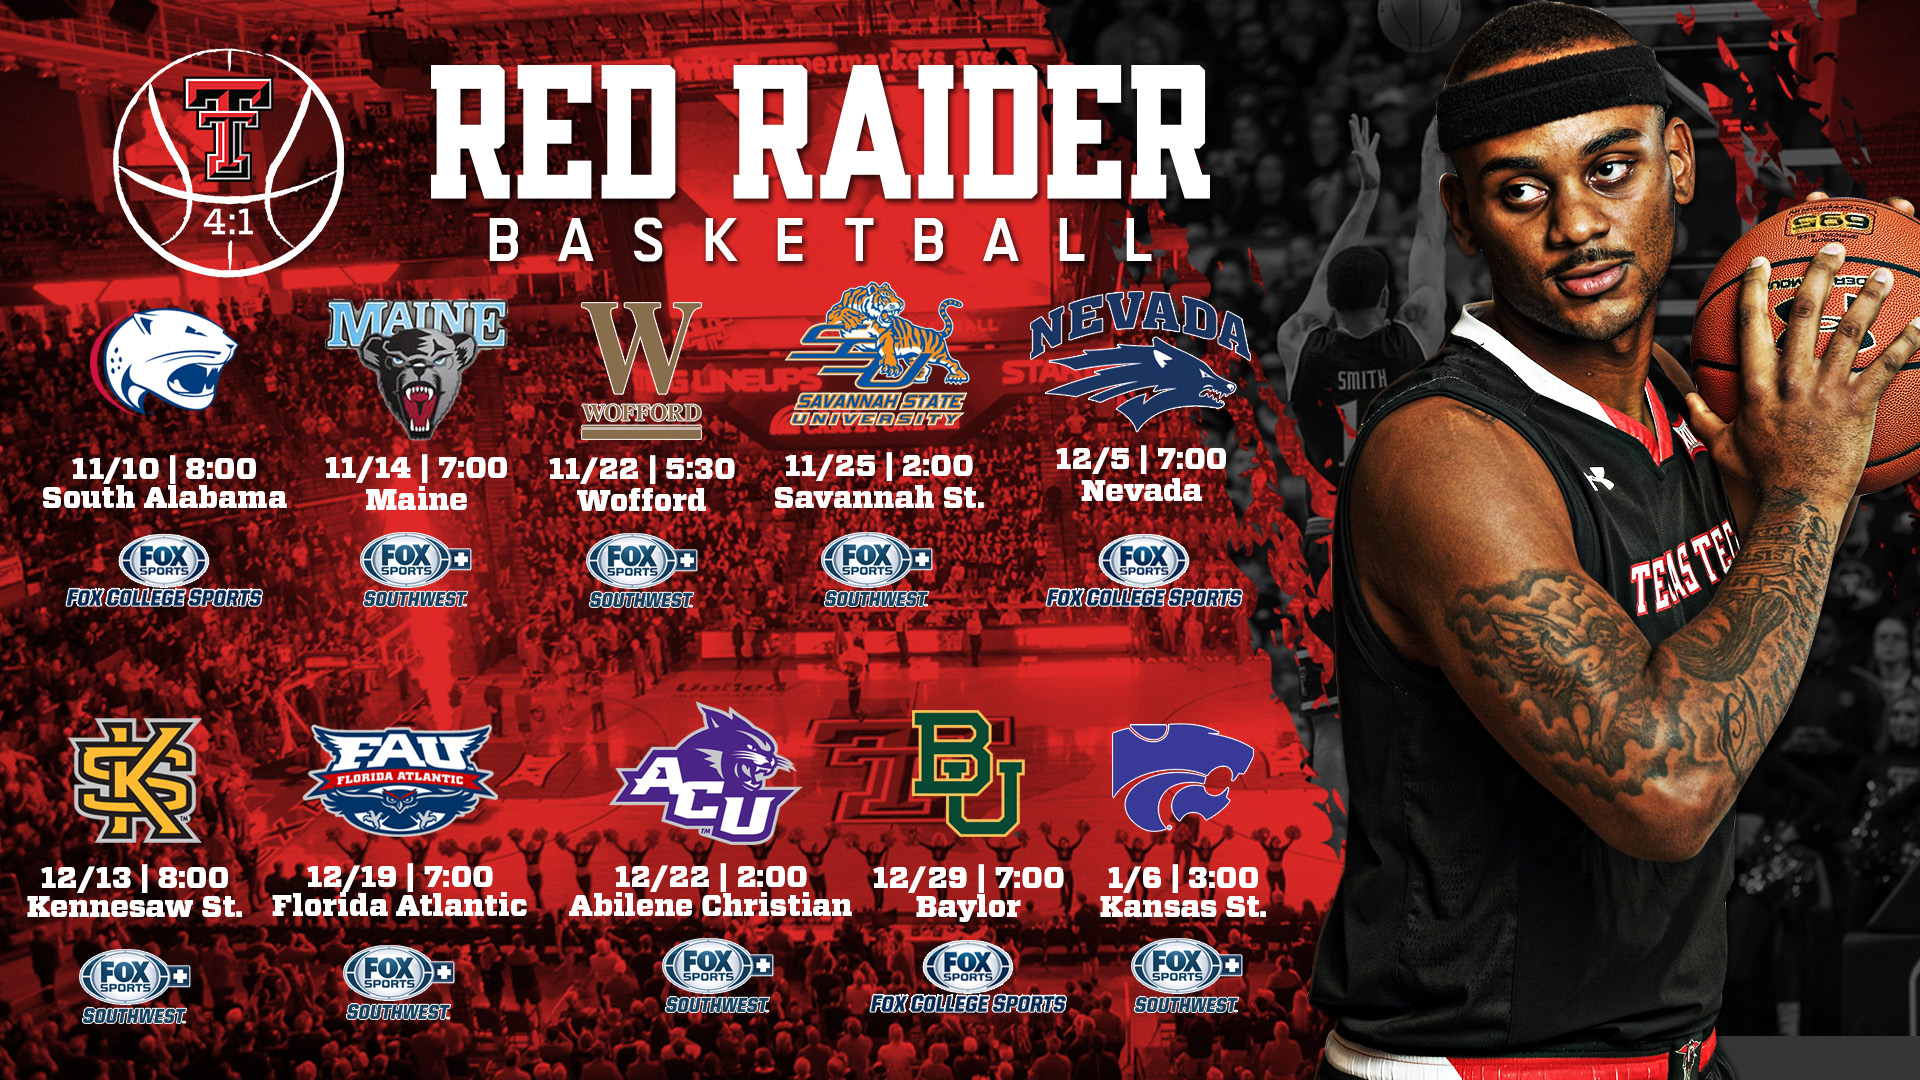 men's basketball adds 10 fox appearances - texas tech university